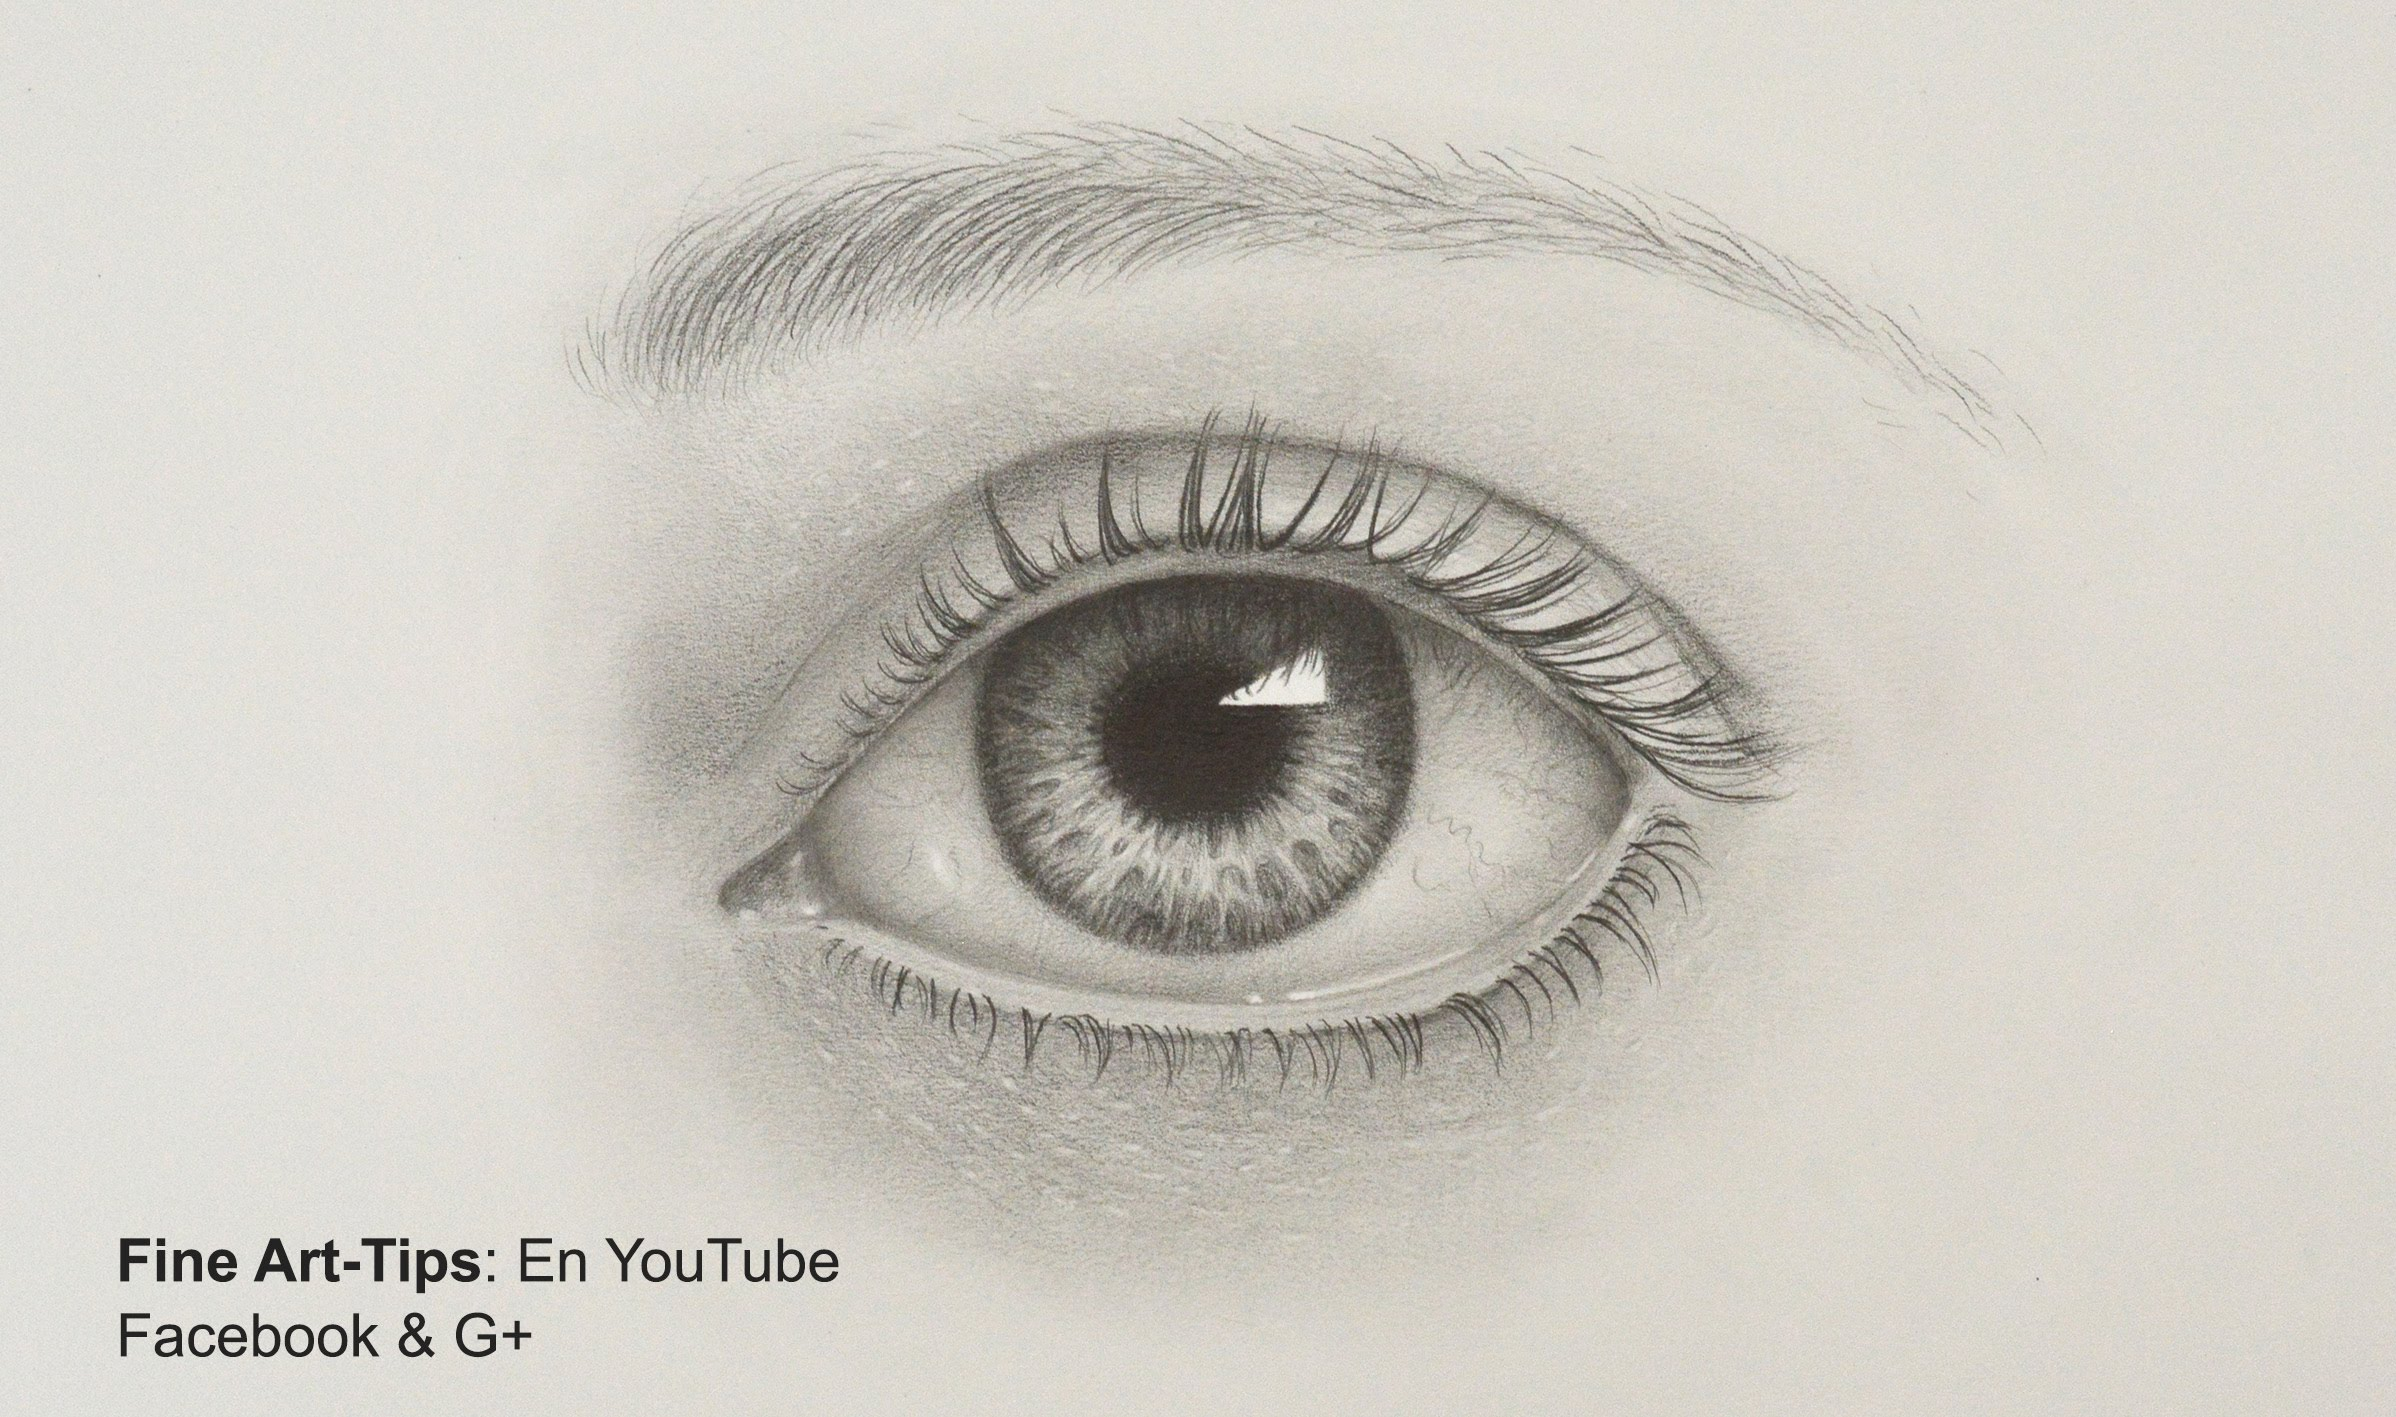 Drawn quoth pencil With Realistic Eye a to